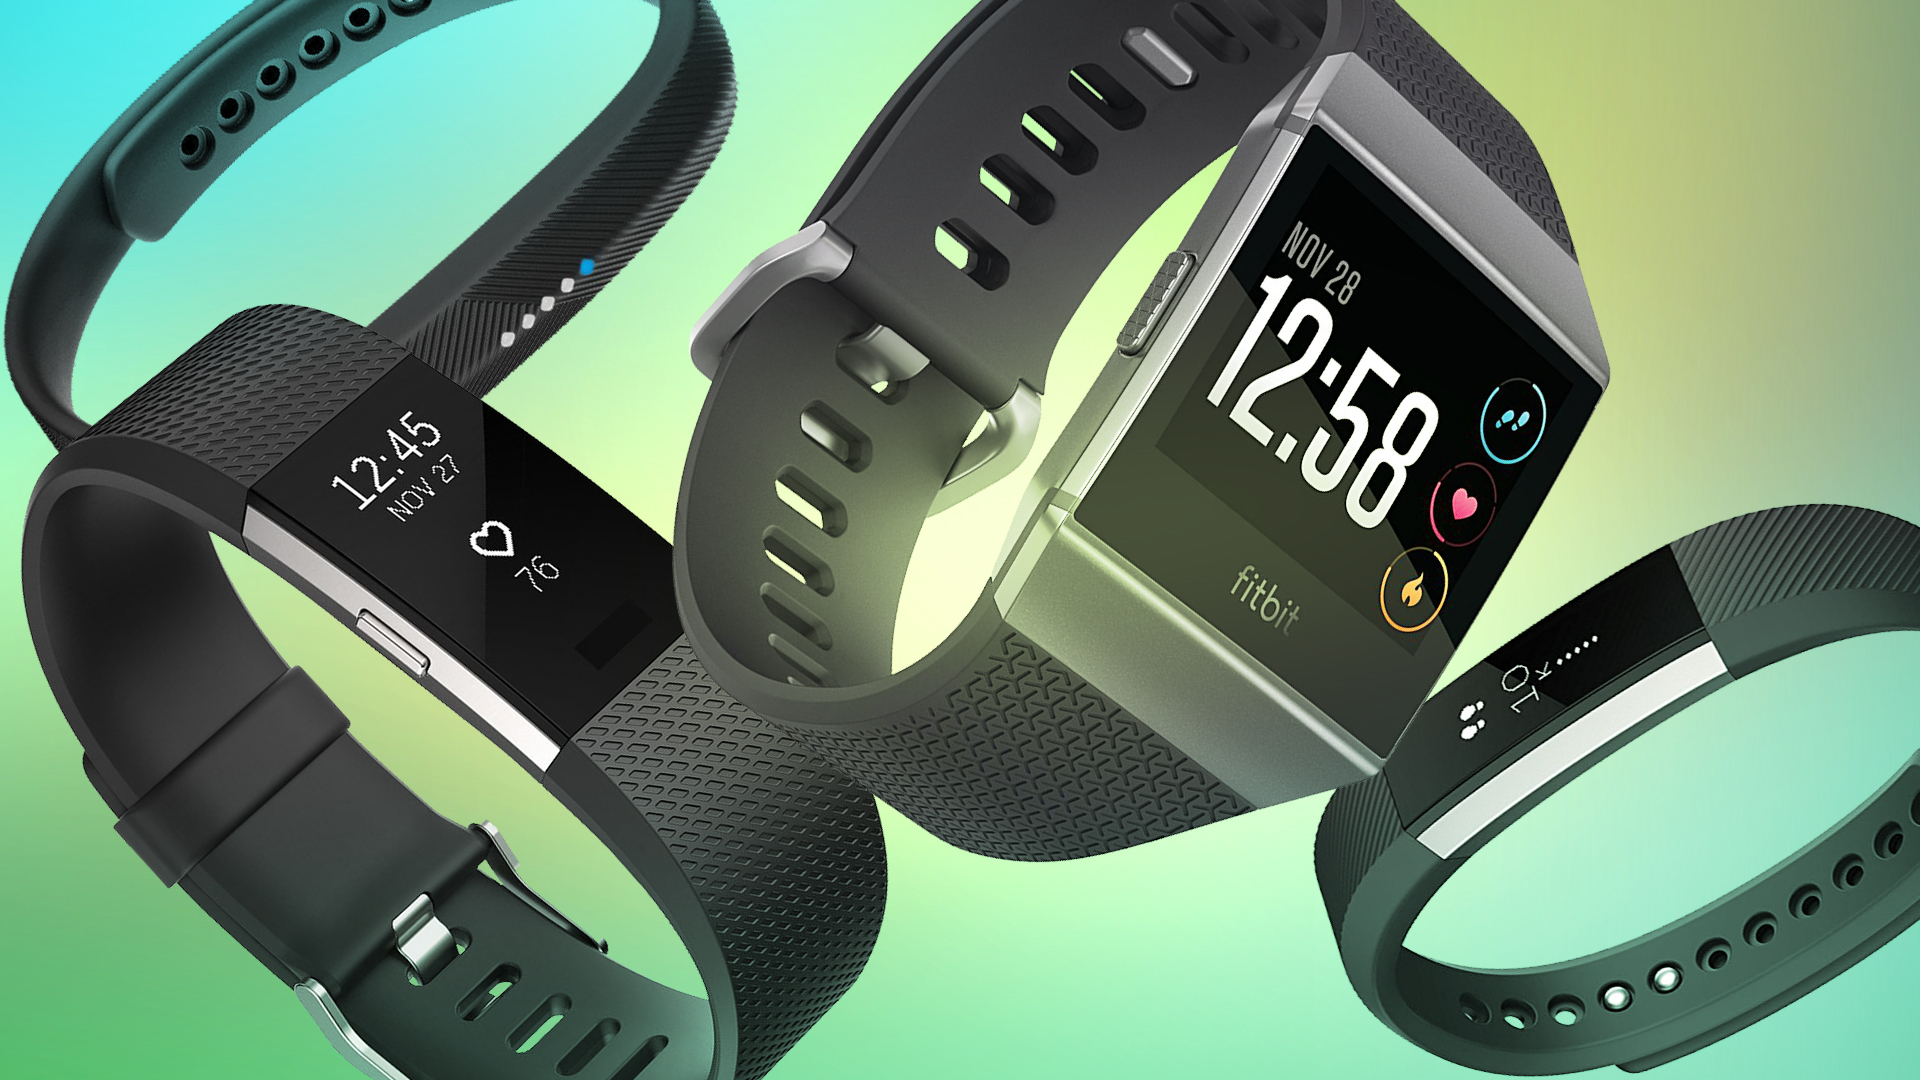 Free Download Best Fitbit 2019 Reviews And Buying Advice Macworld 1920x1080 For Your Desktop Mobile Tablet Explore 22 Fitbit Wallpapers Fitbit Wallpapers